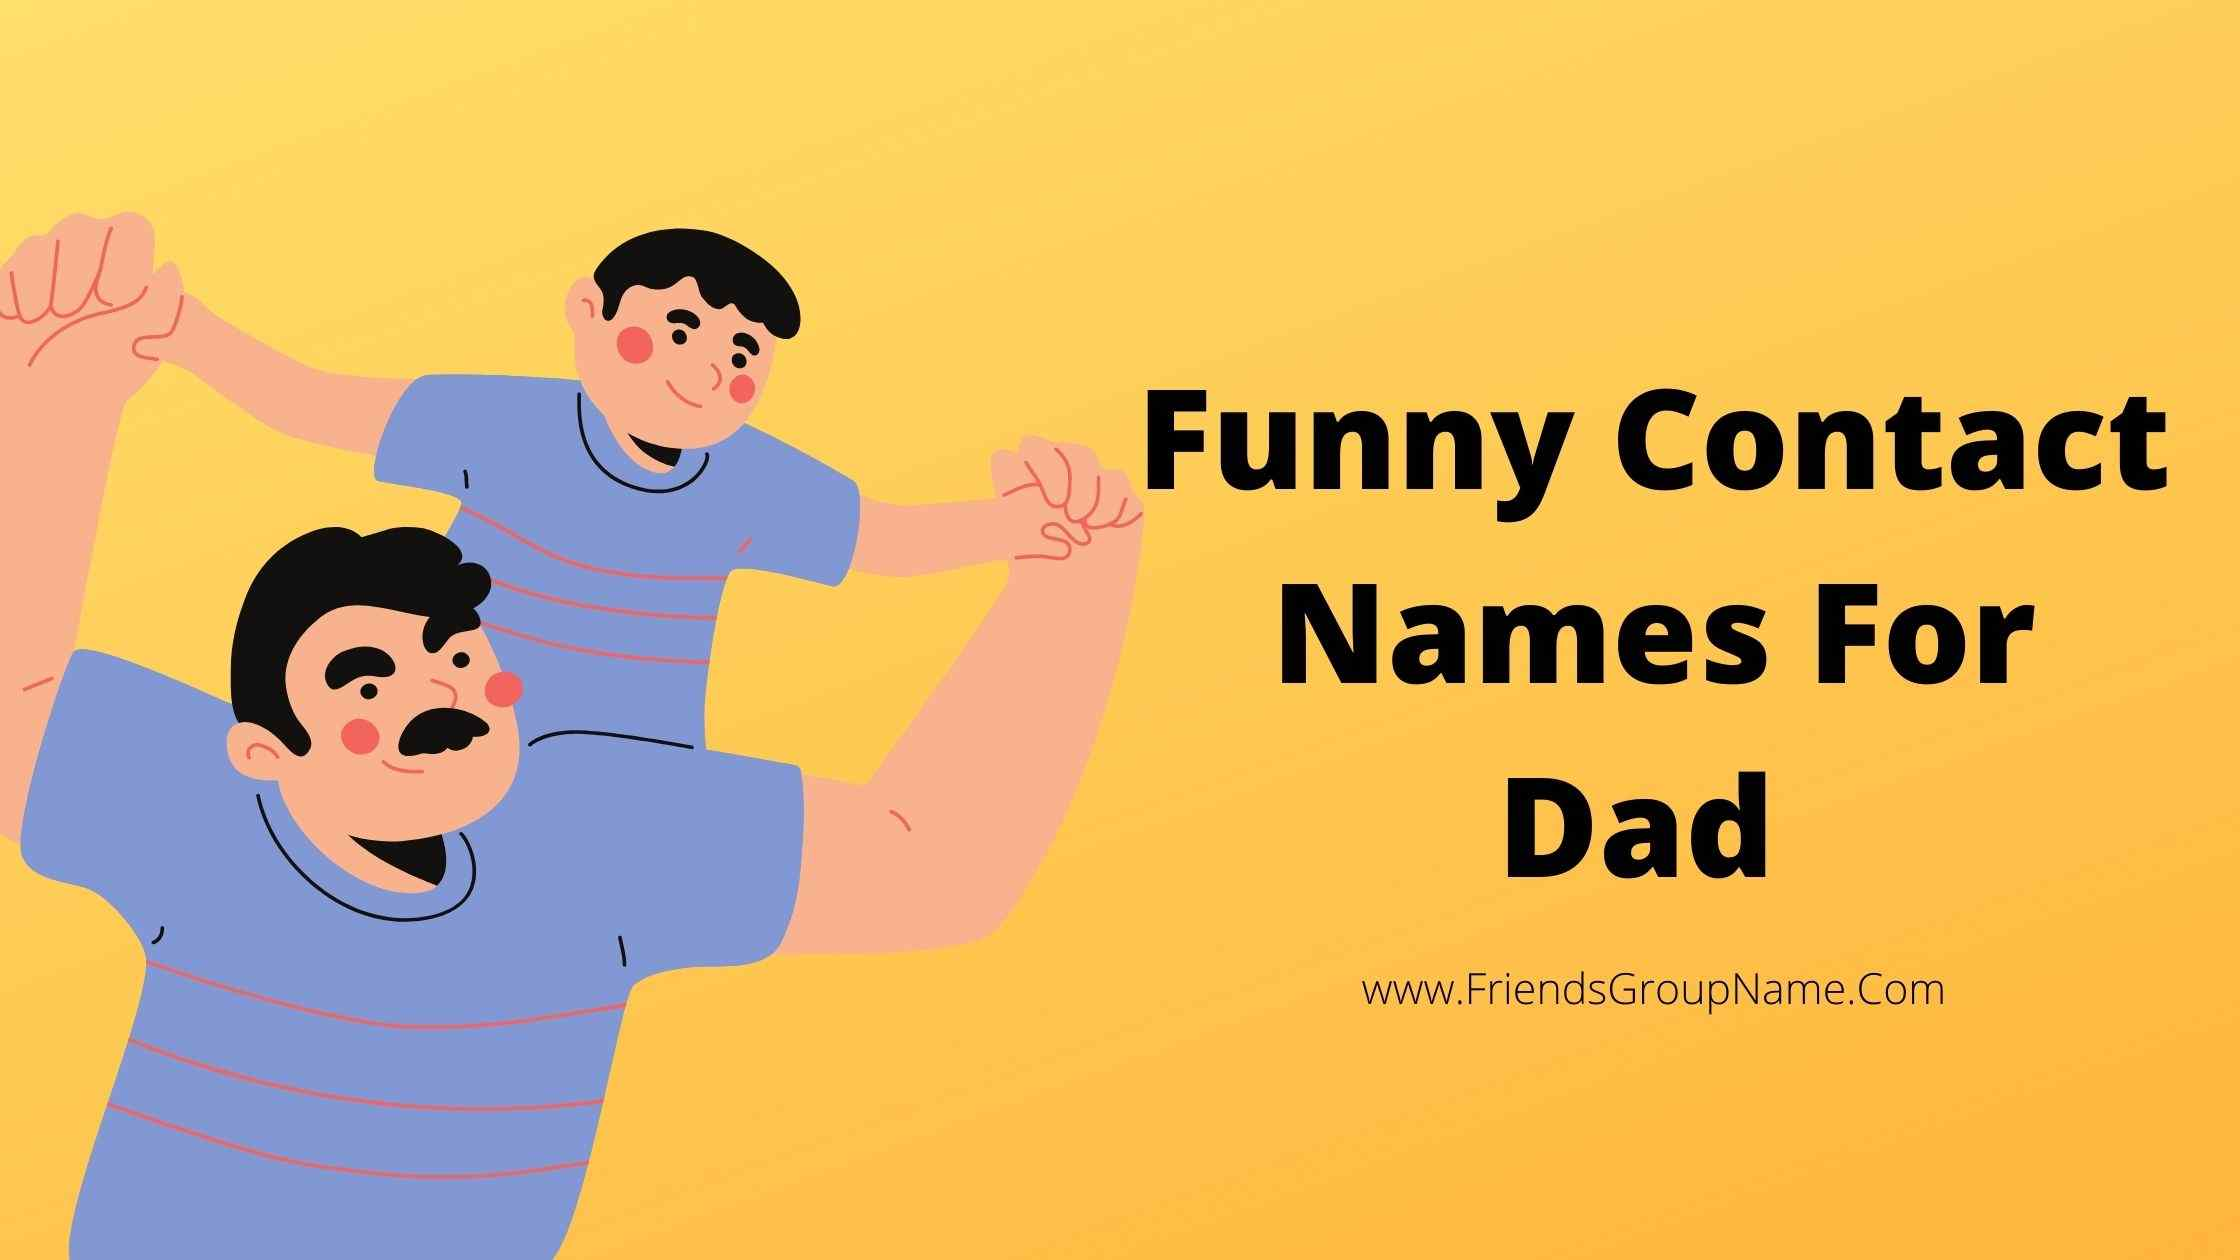 Funny Contact Names For Dad